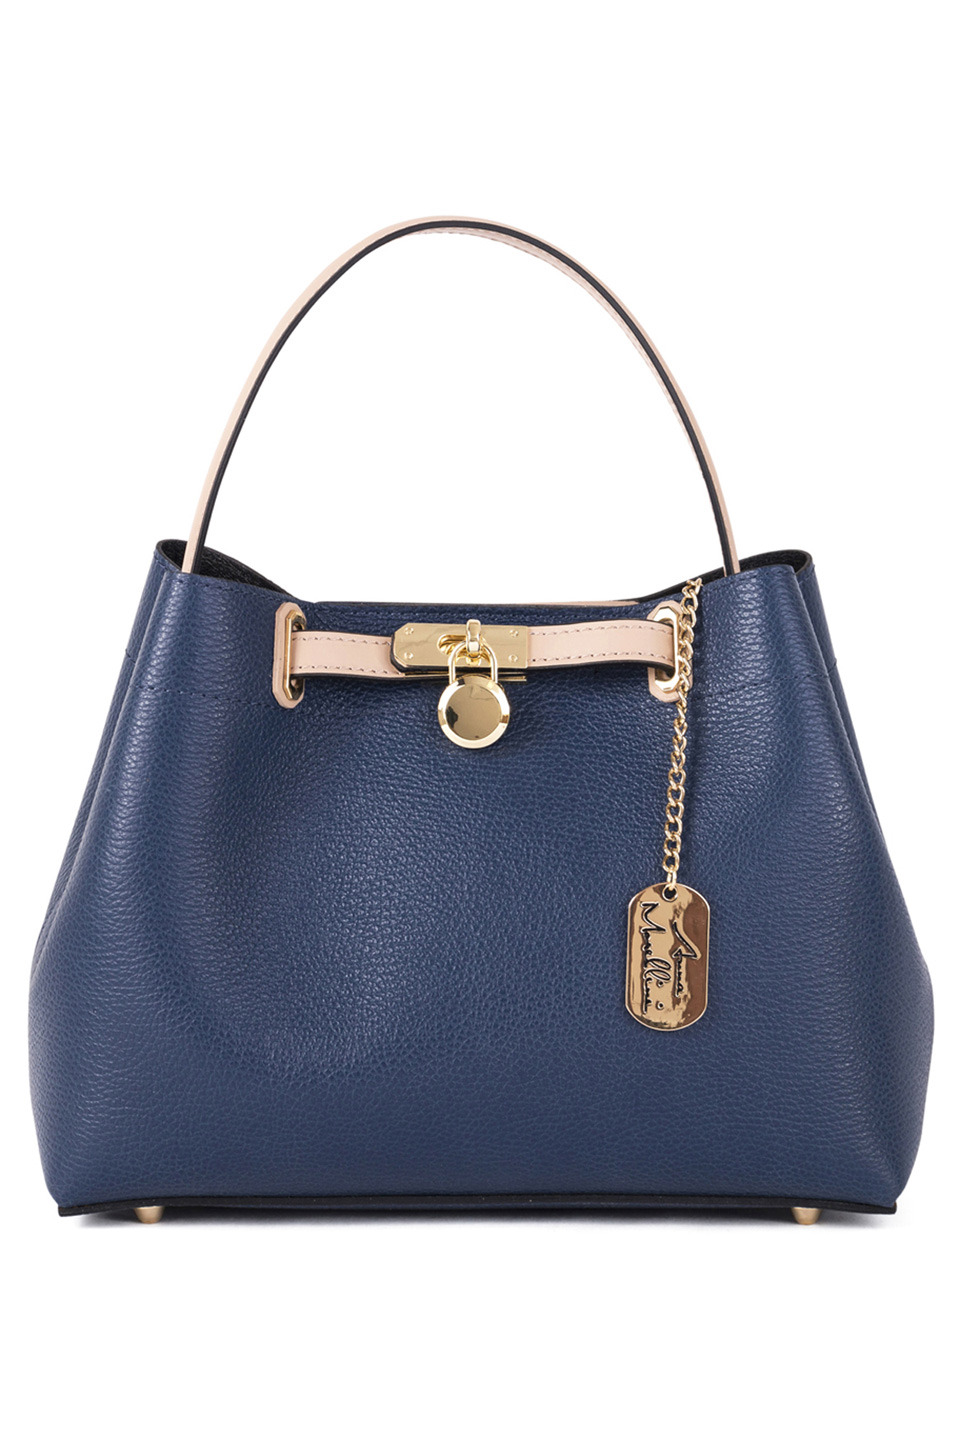 FARRAH HANDBAG IN BLUE